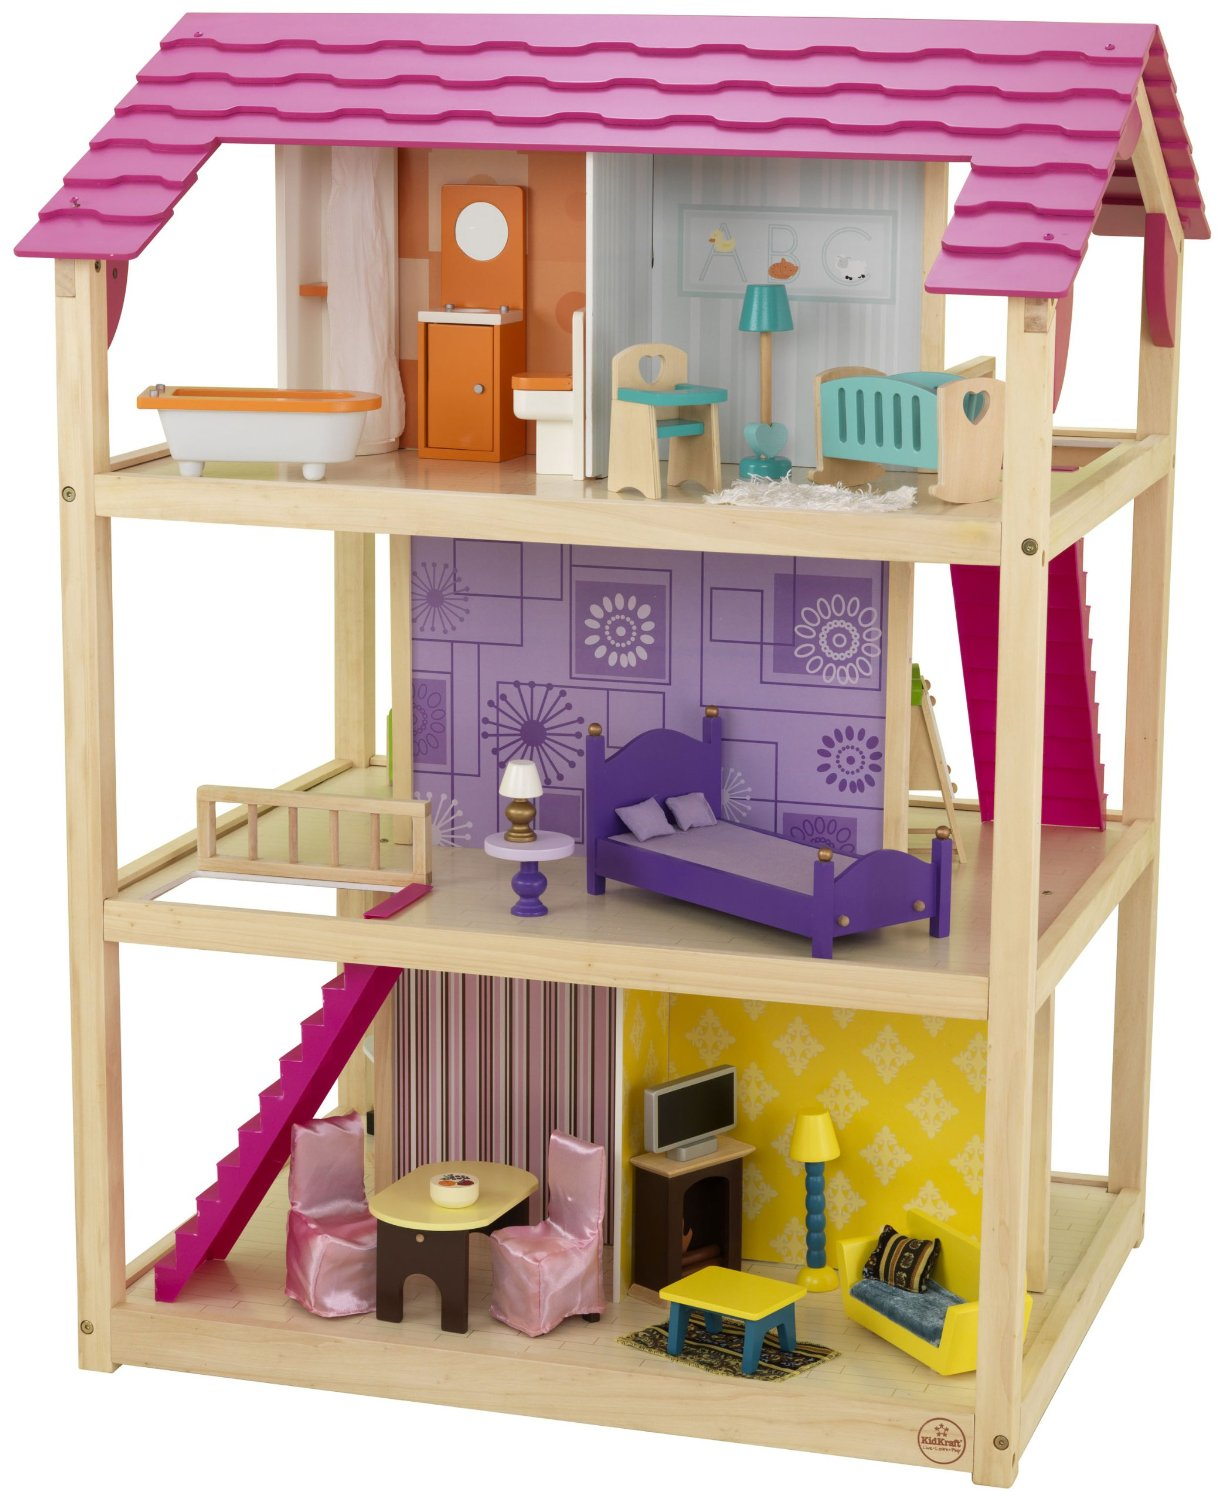 KidKraft So hic Dollhouse eview - Modern, Spacious & Fun! - ^